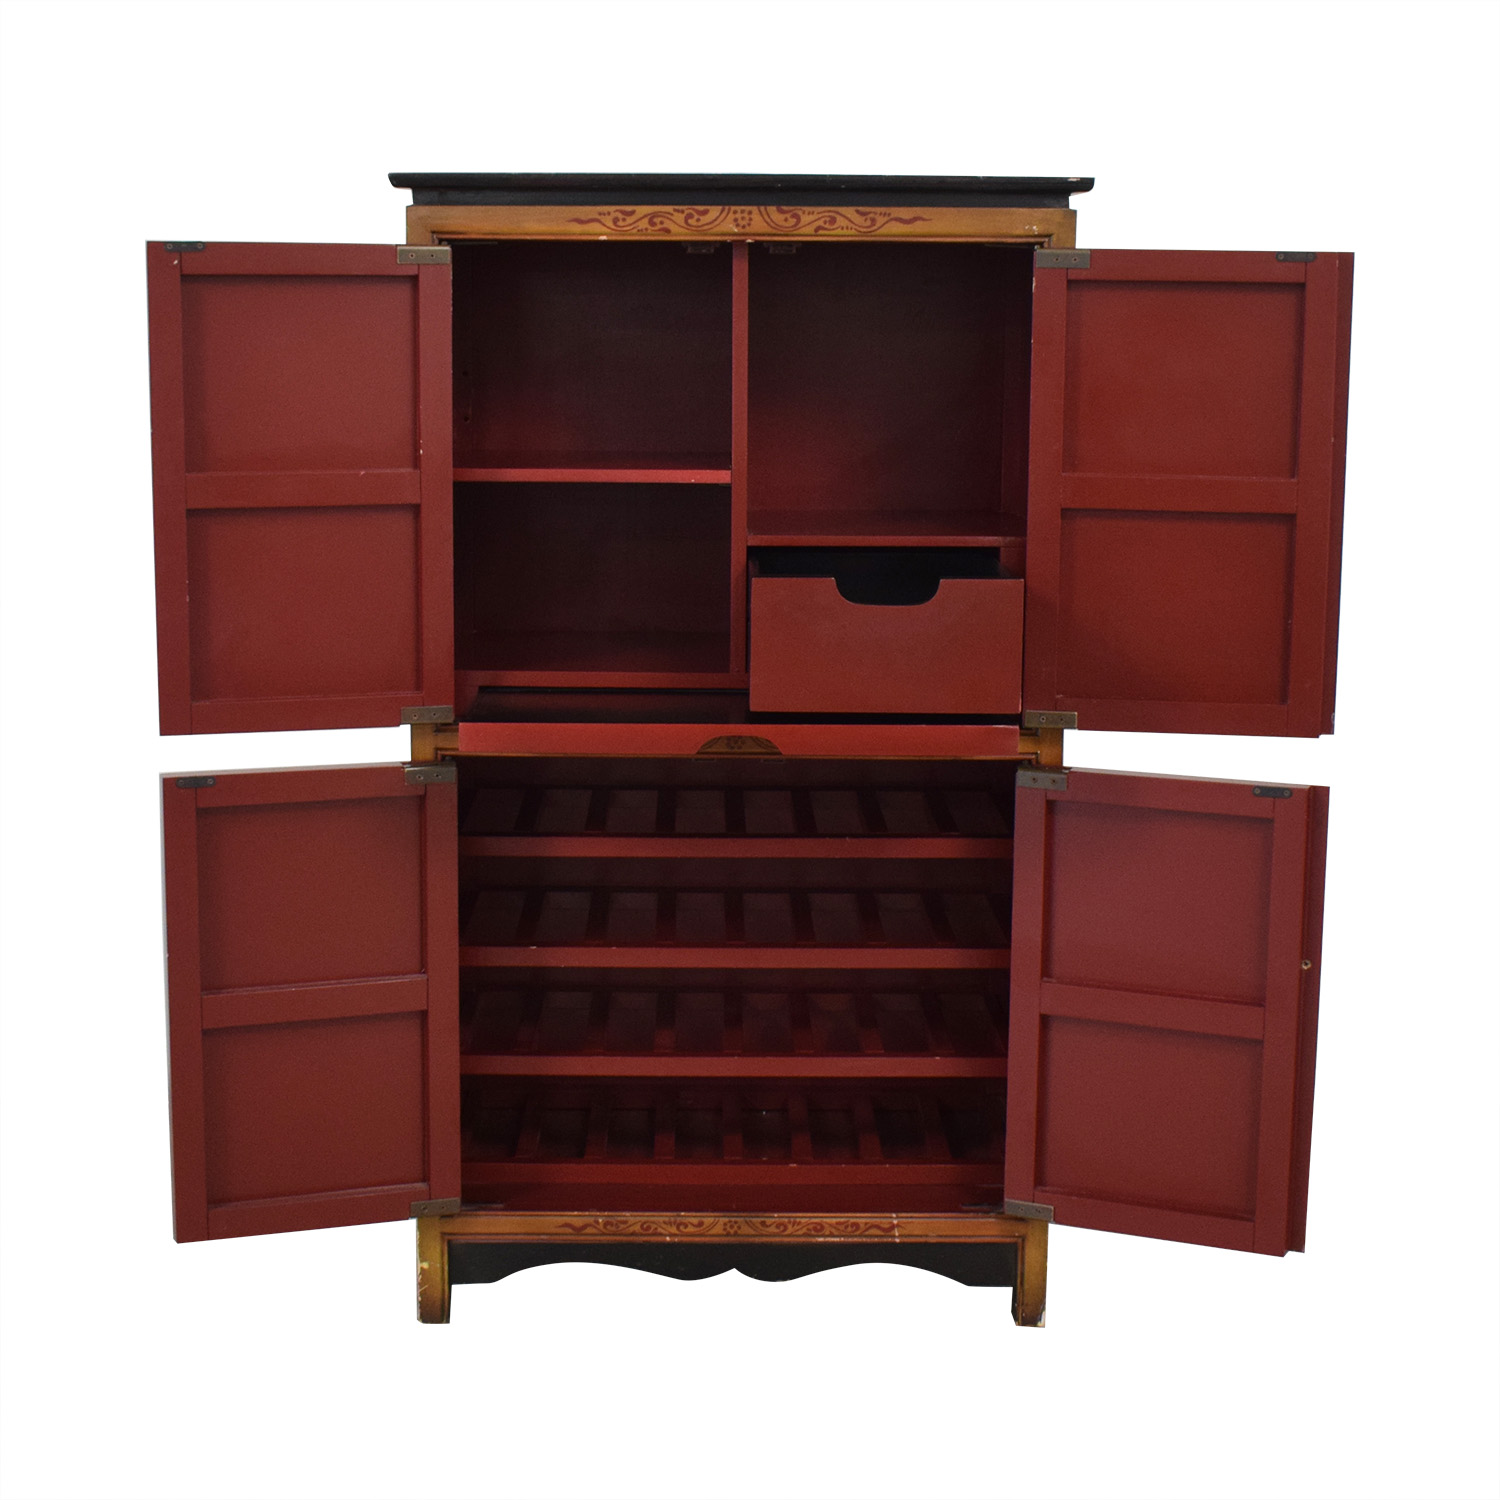 Pier 1 Pier 1 Decorative Wine Cabinet for sale